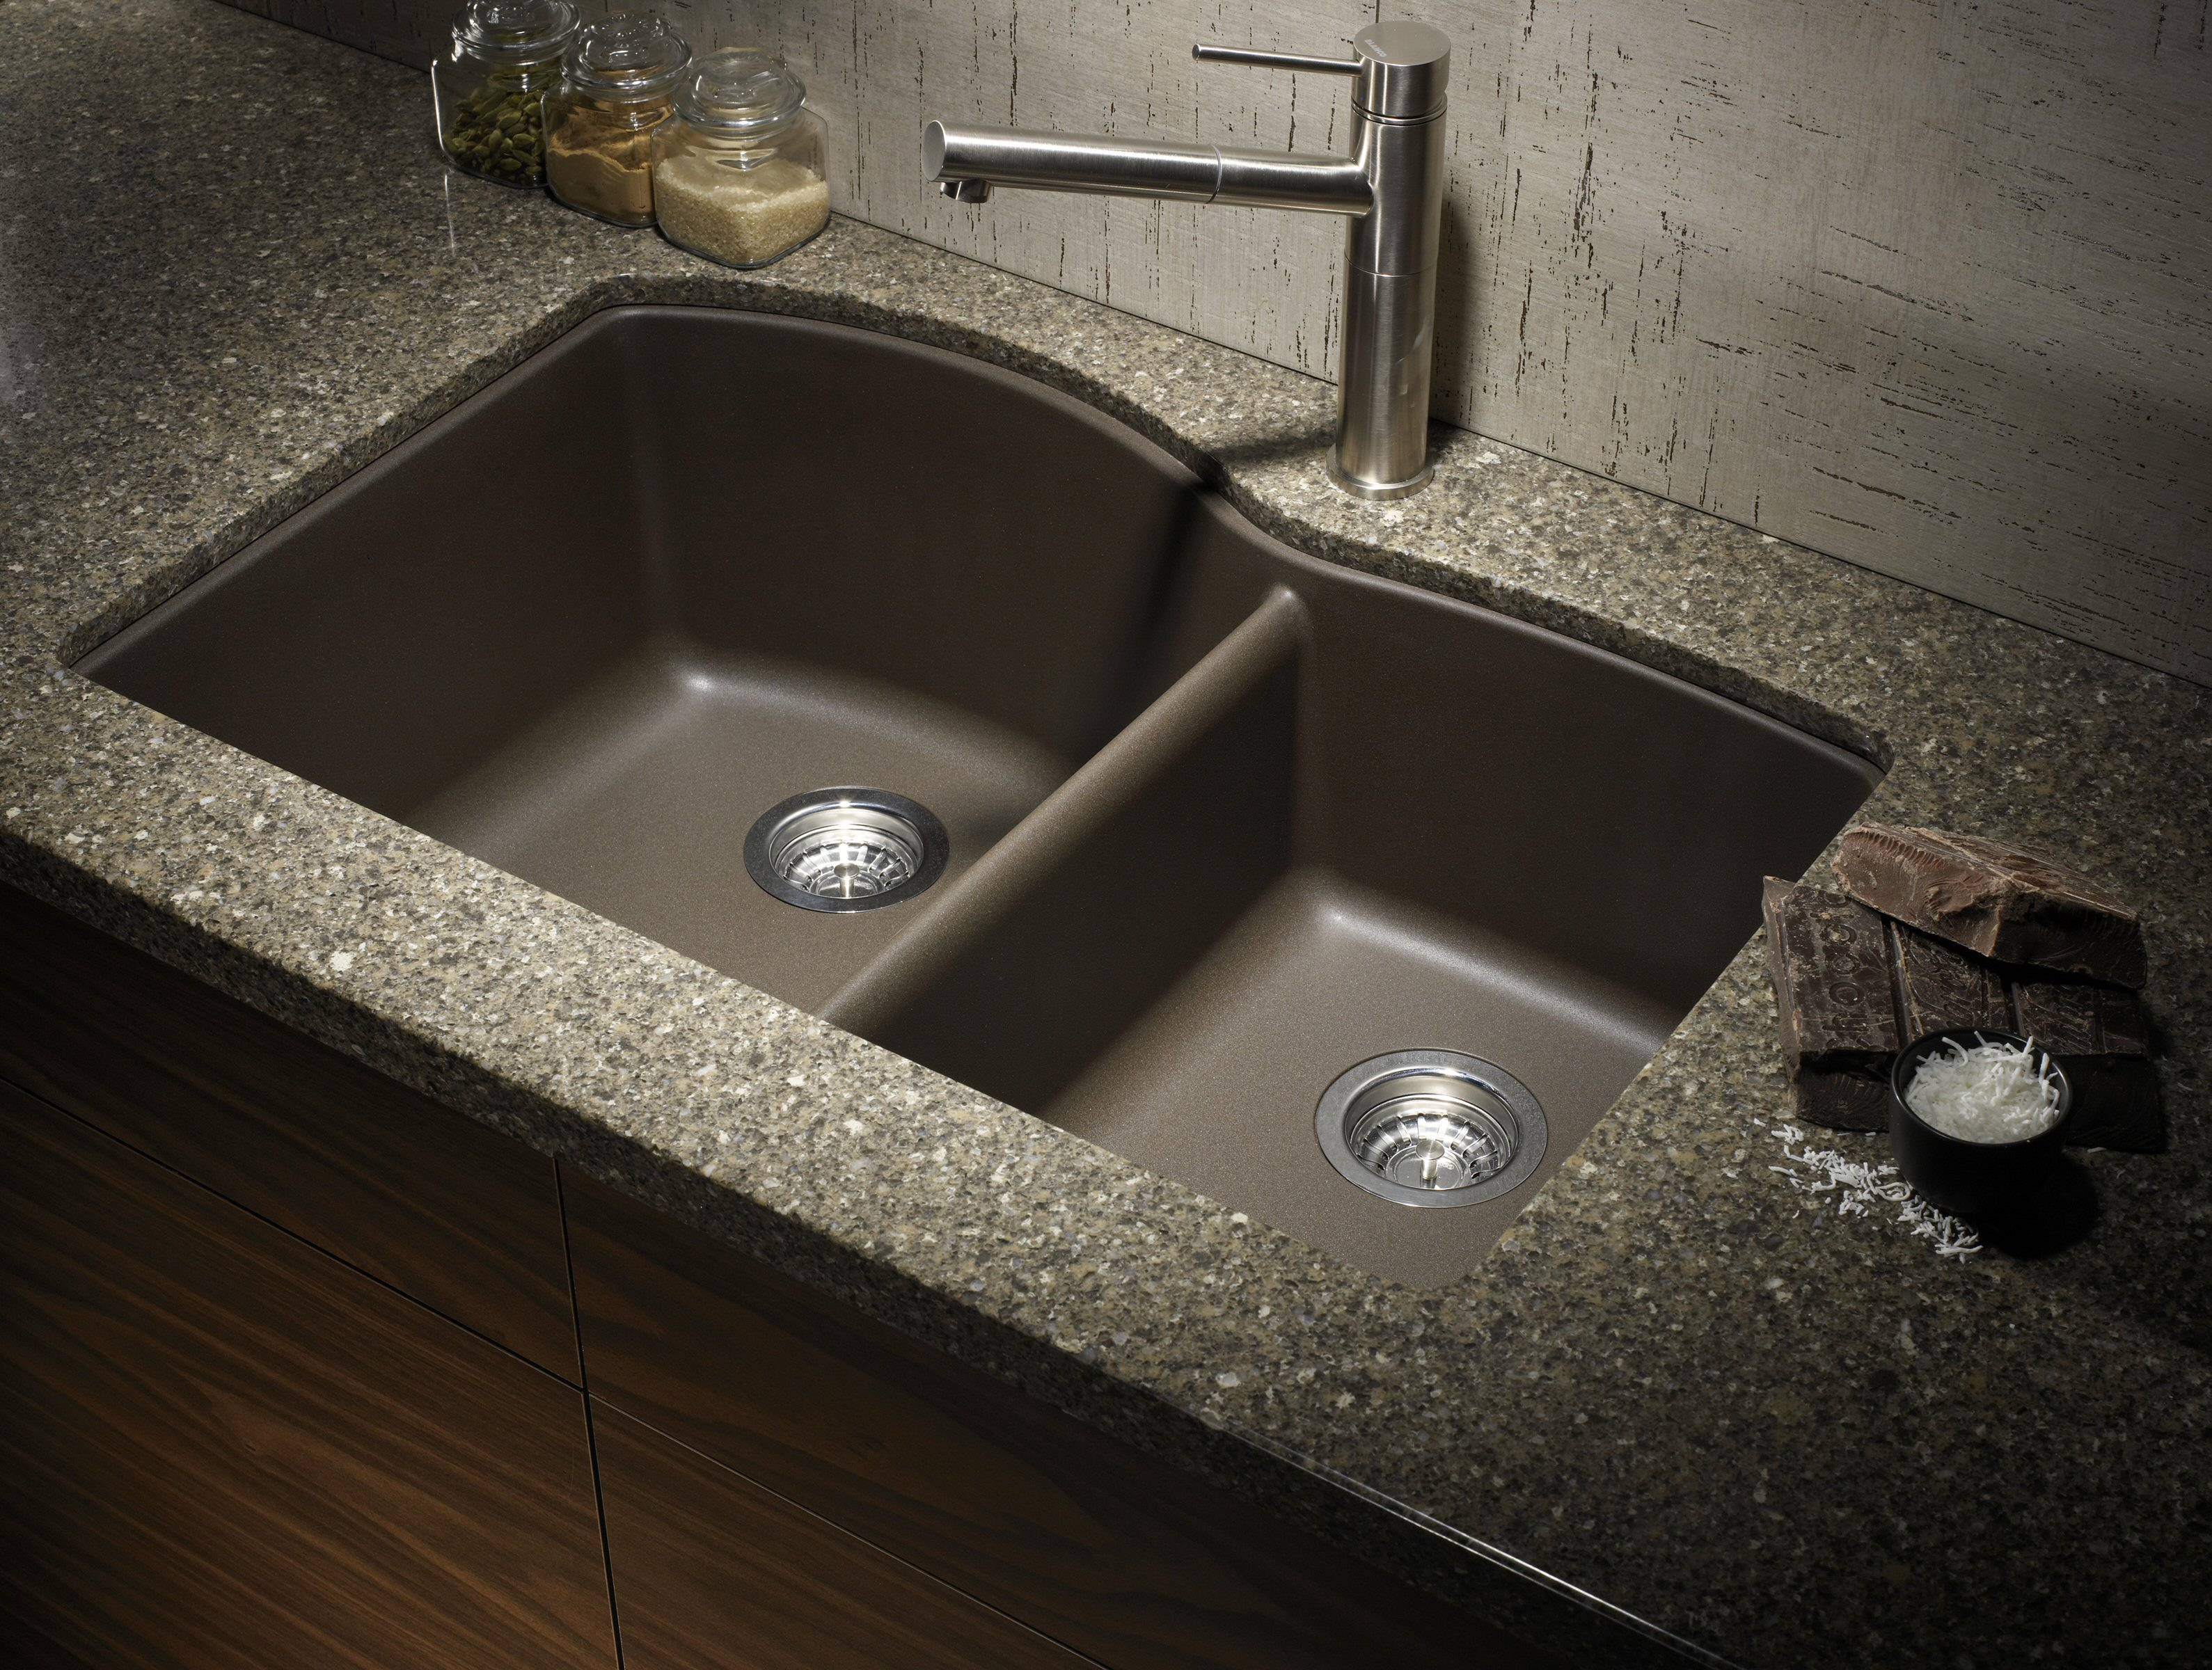 Choosing Your New Sink